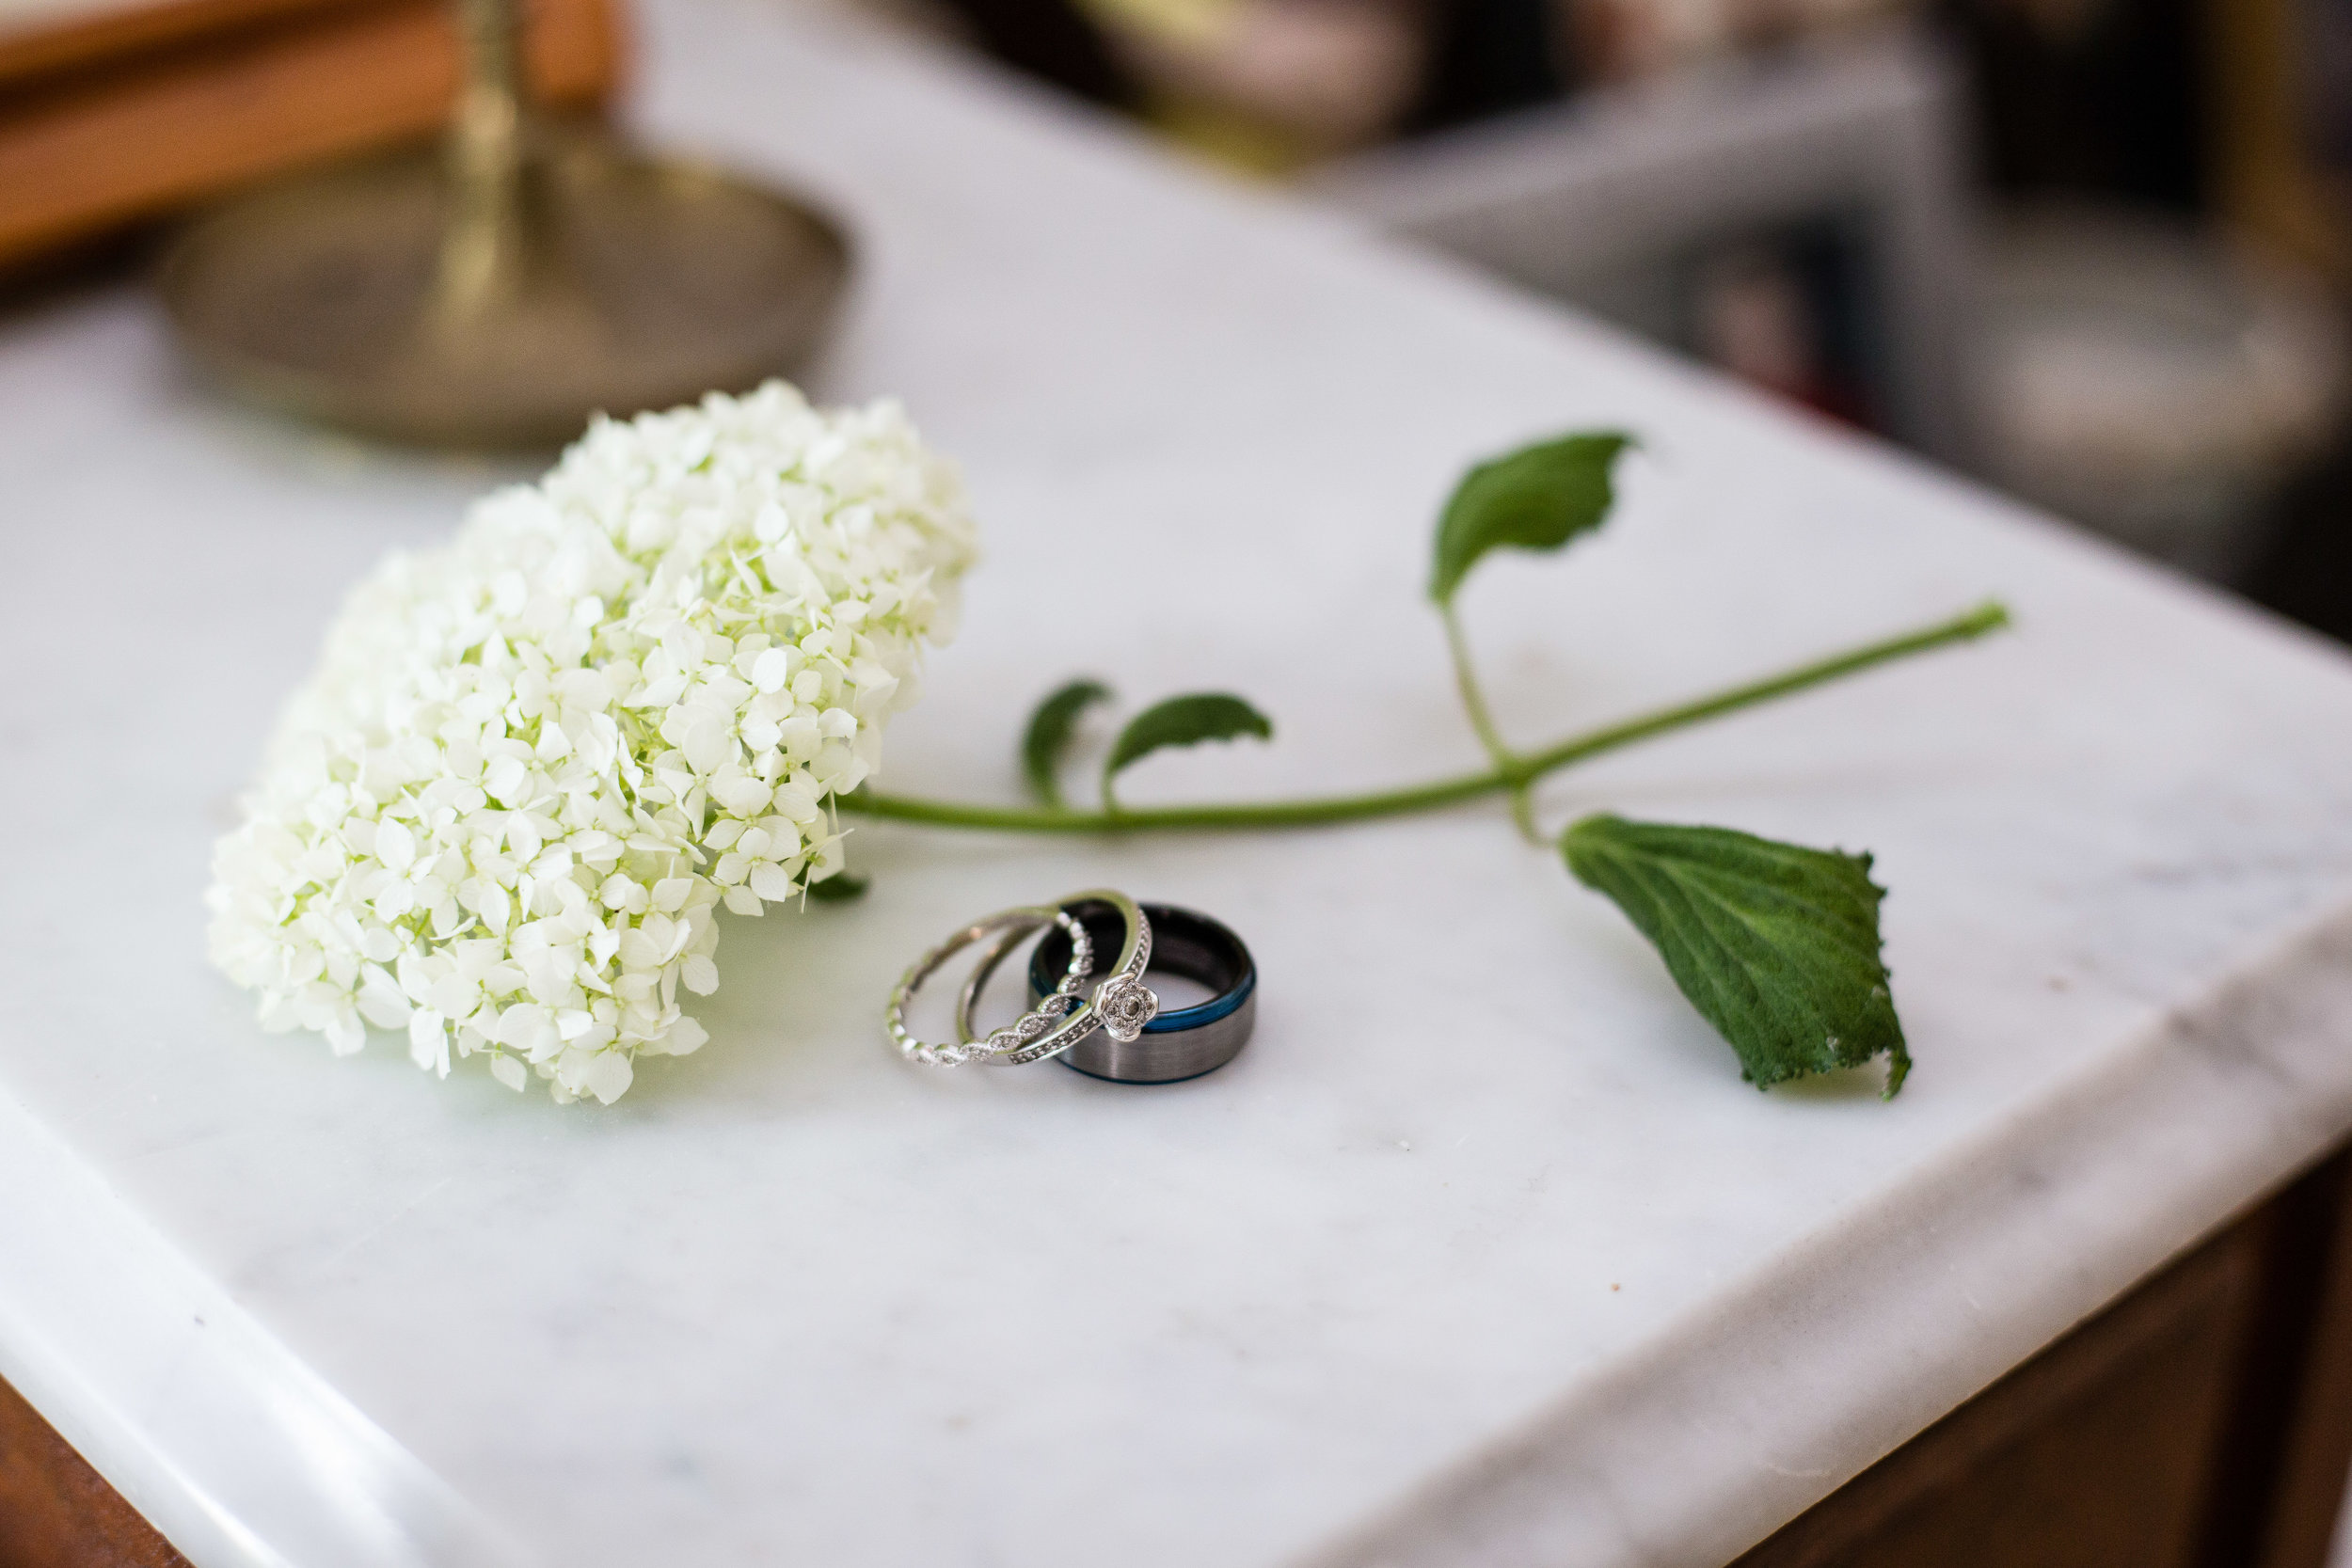 Grand Ledge Michigan Wedding Details - Flower with Rings_Tania Howard Photography.jpg